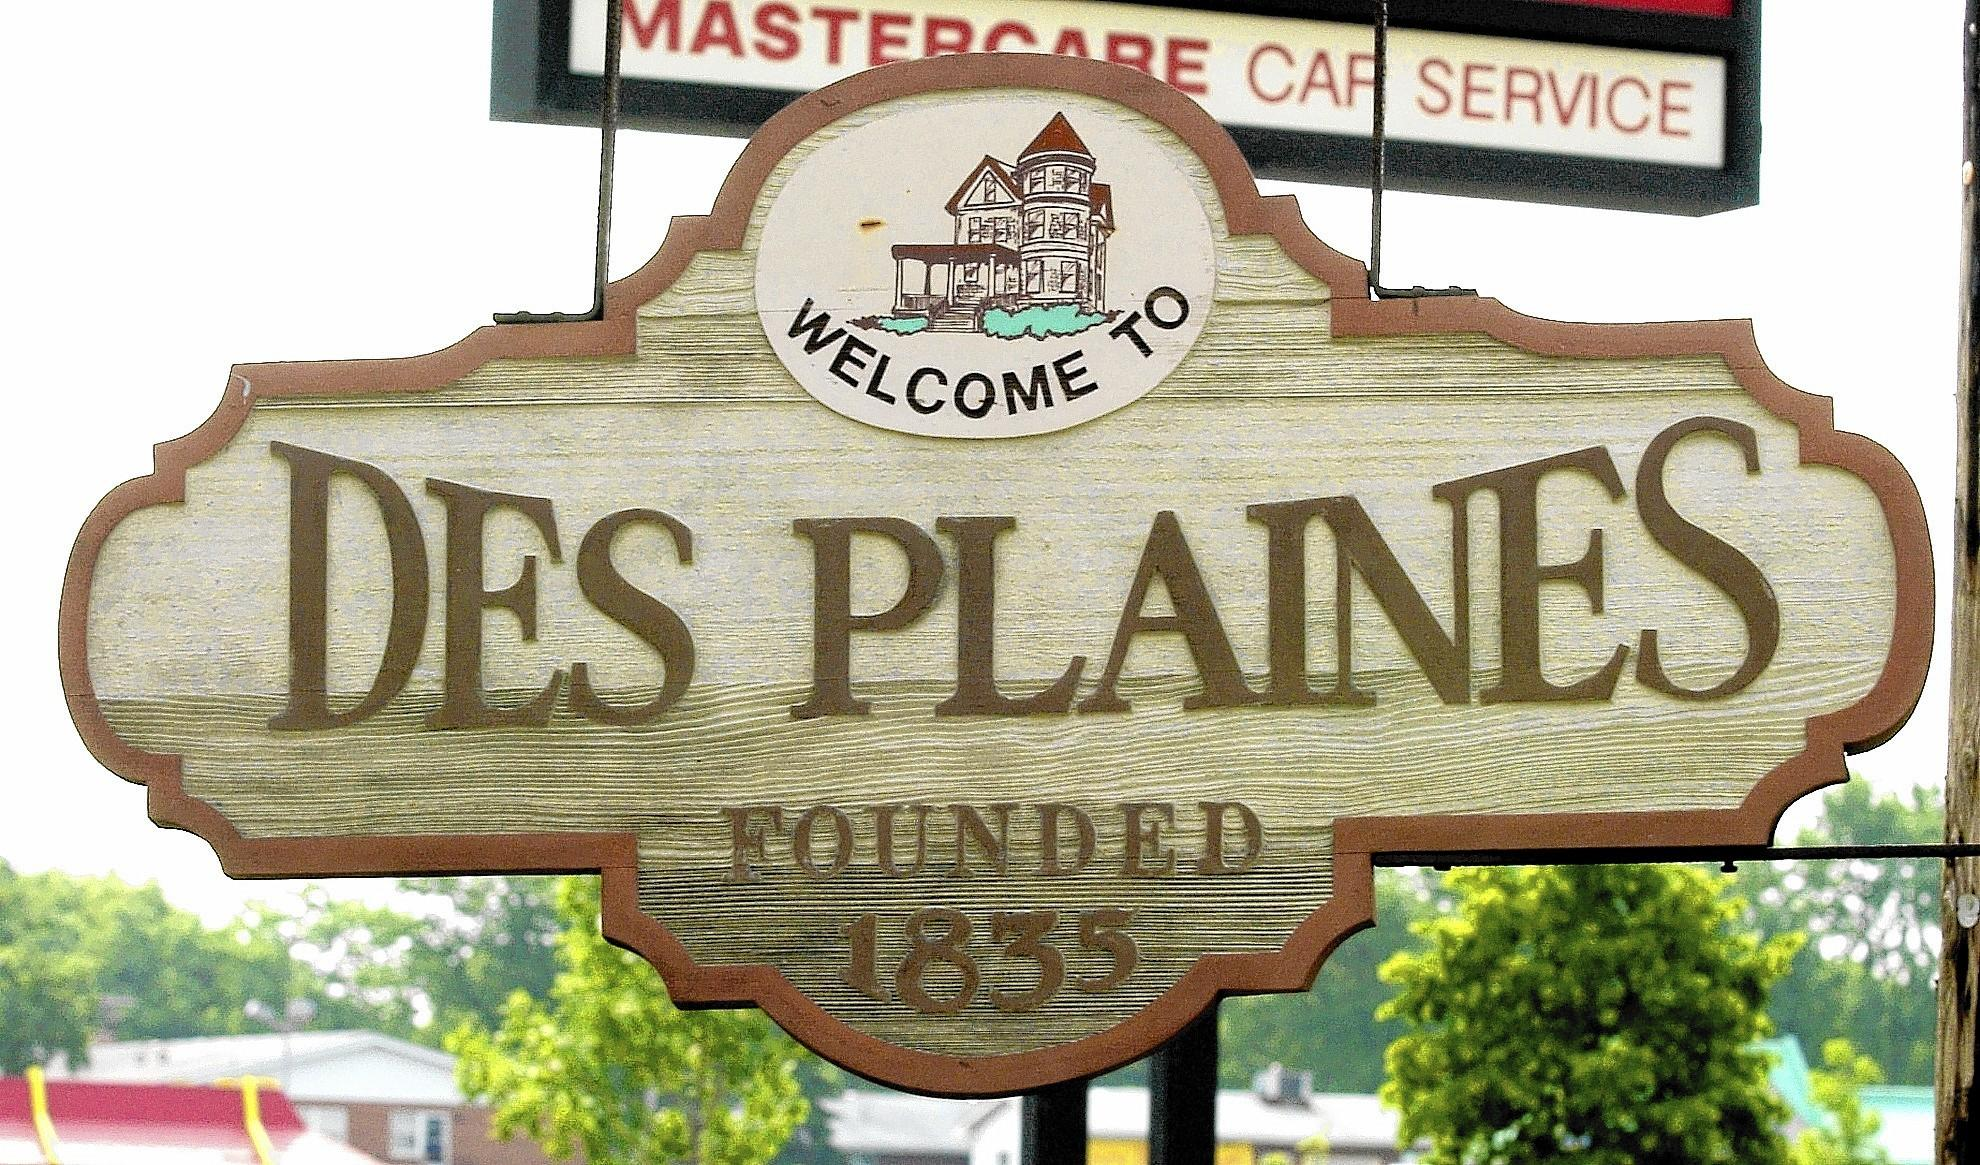 Des Plaines officials approved the hiring of a Nashville-based consultant to help create a branding and marketing strategy for the city.